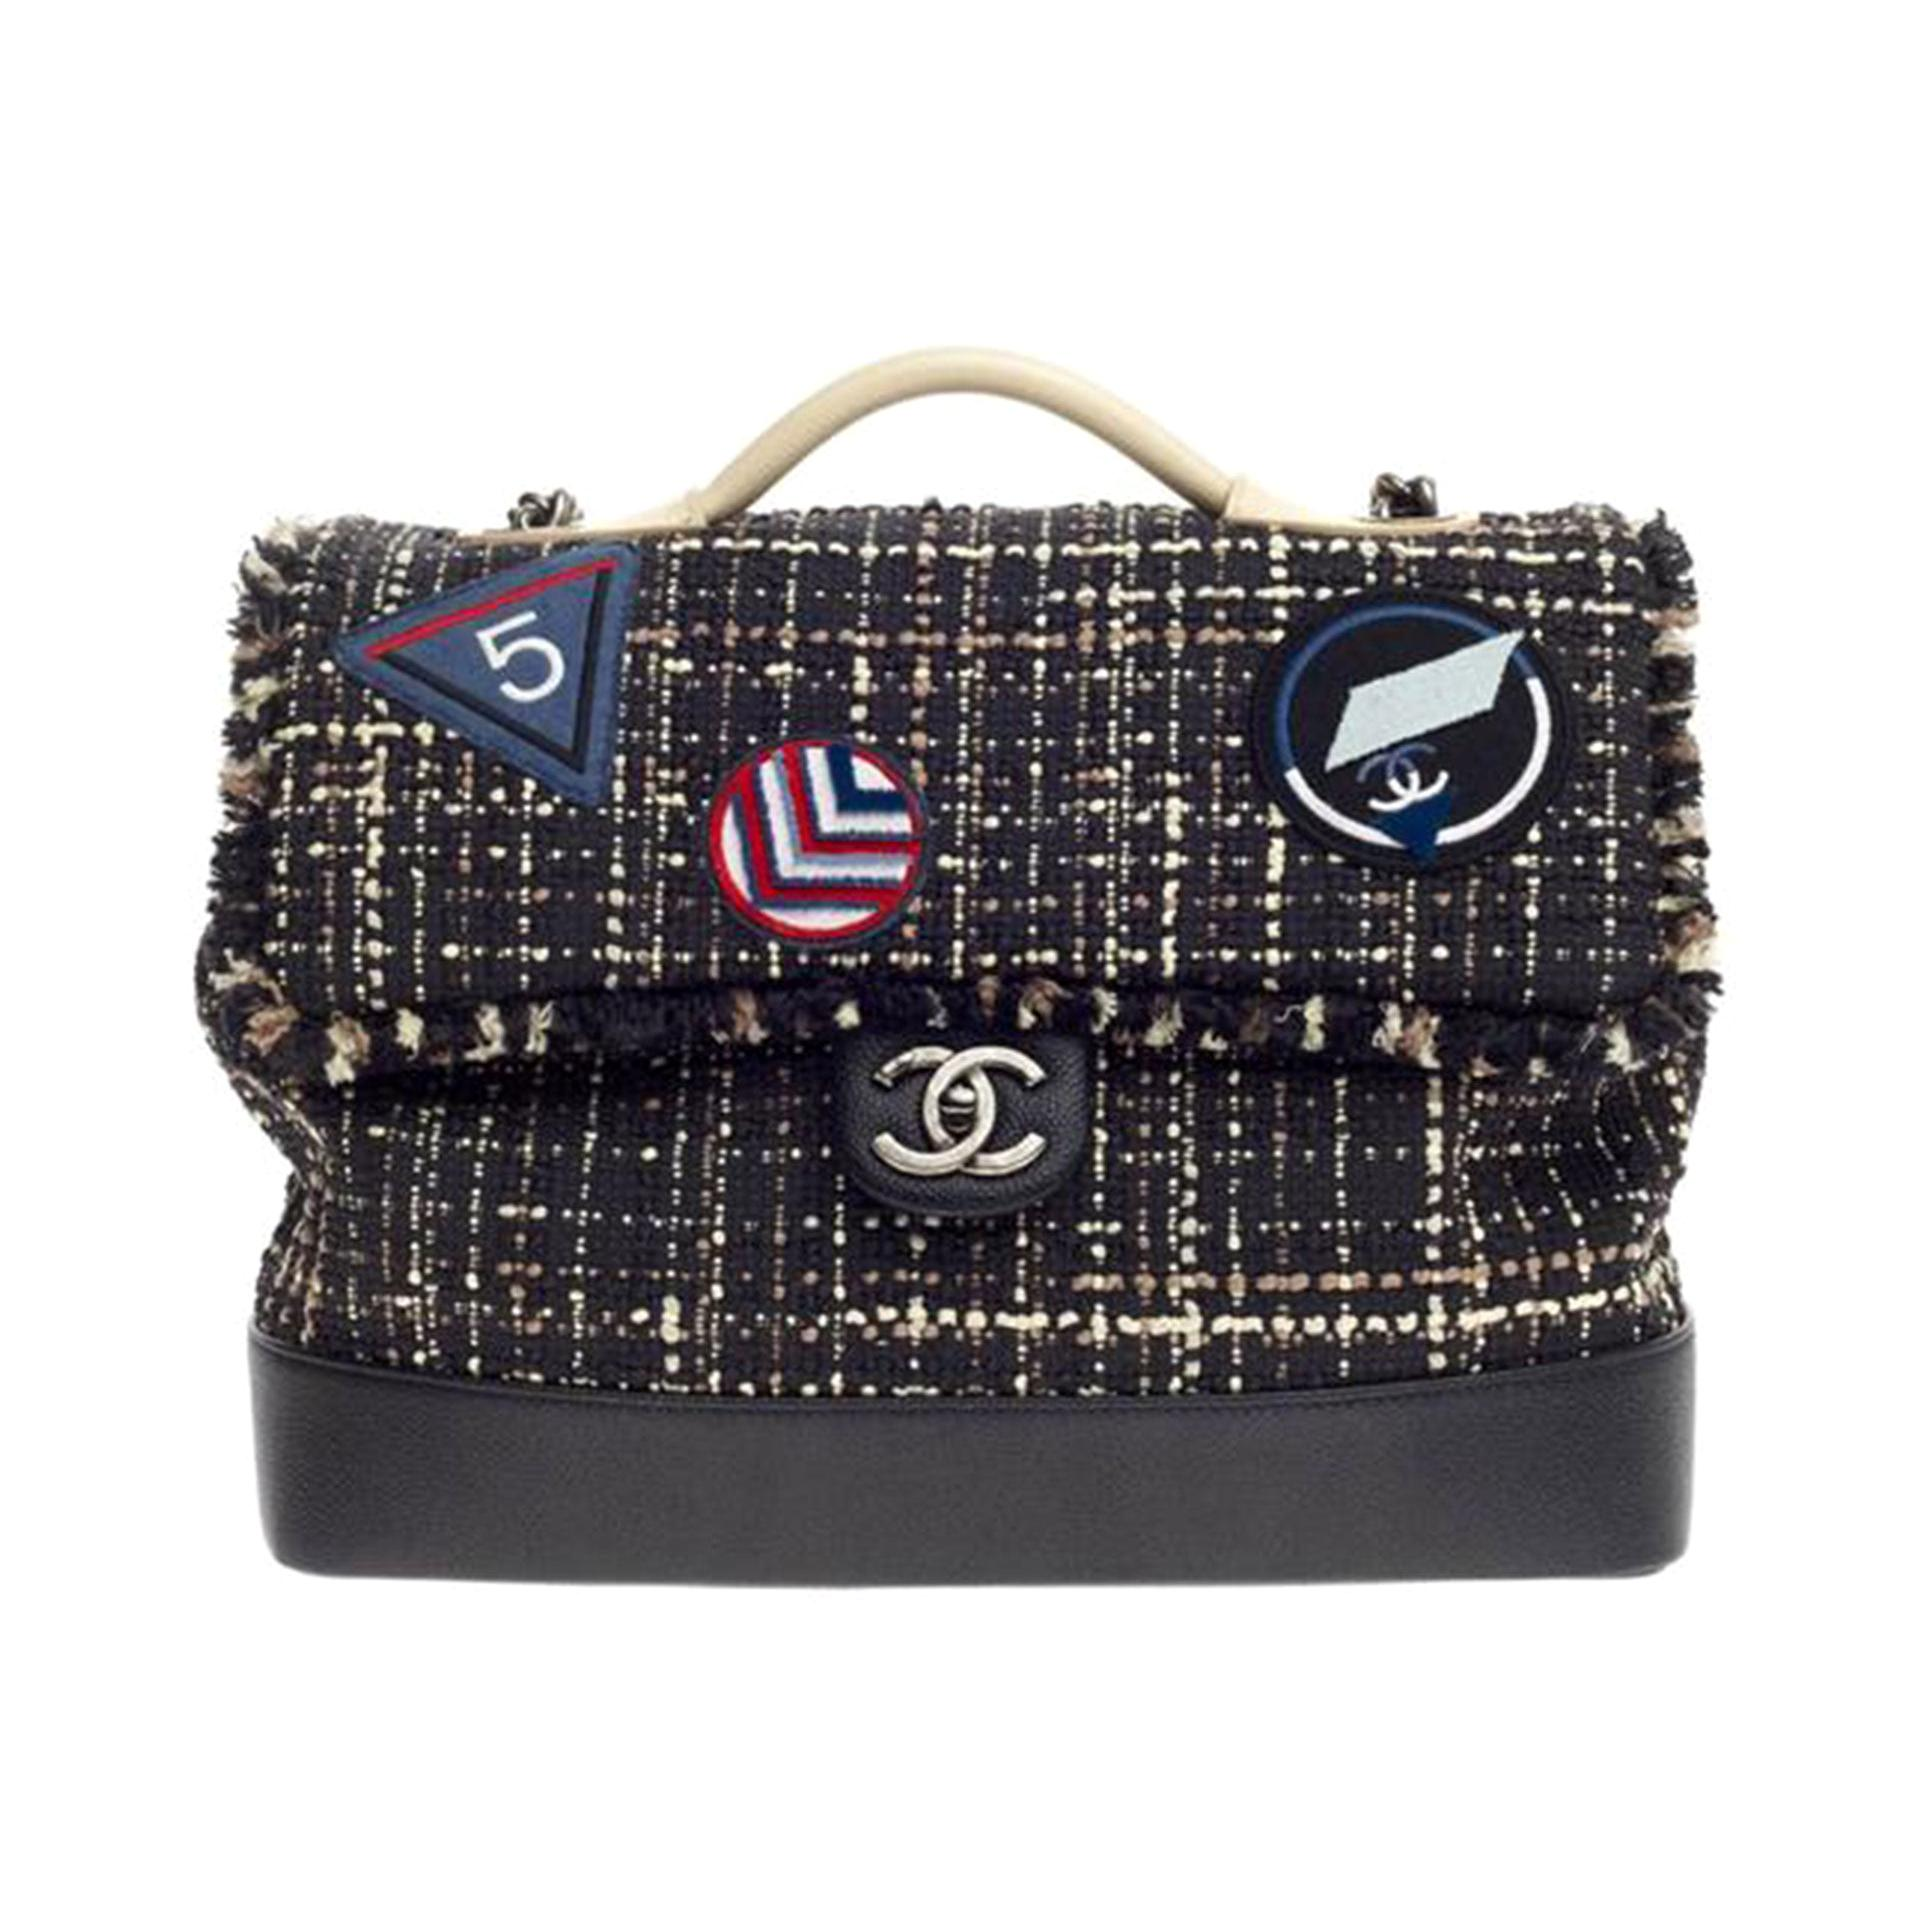 Chanel Classic Flap Travel Airline Airport 2016 Runway Top Handle Bag